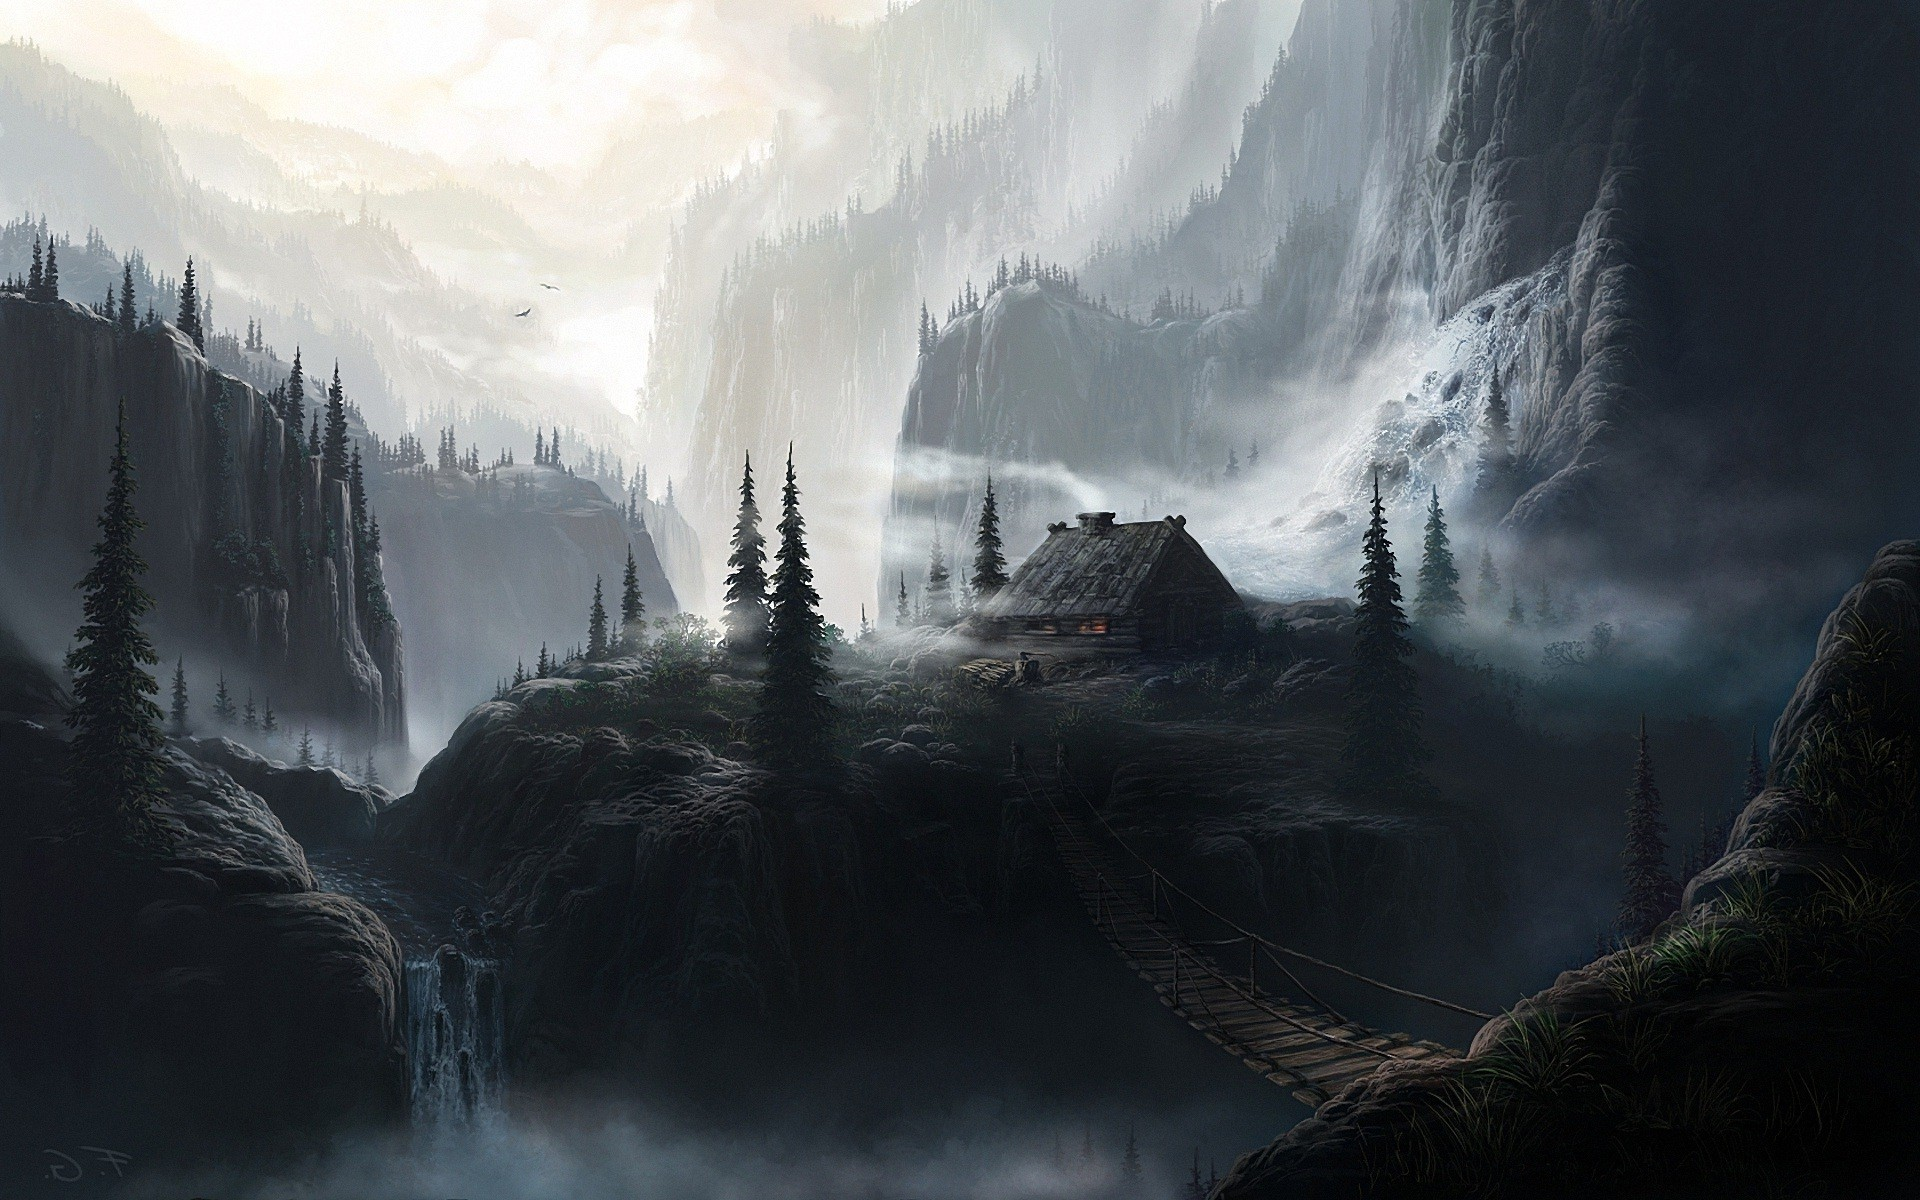 1920x1200 fantasy, backgrounds, wallpaper,landscapes houses, waterfalls, dark, art,  bridges, abstract backgrounds, artwork,download, widescreen Wallpaper HD